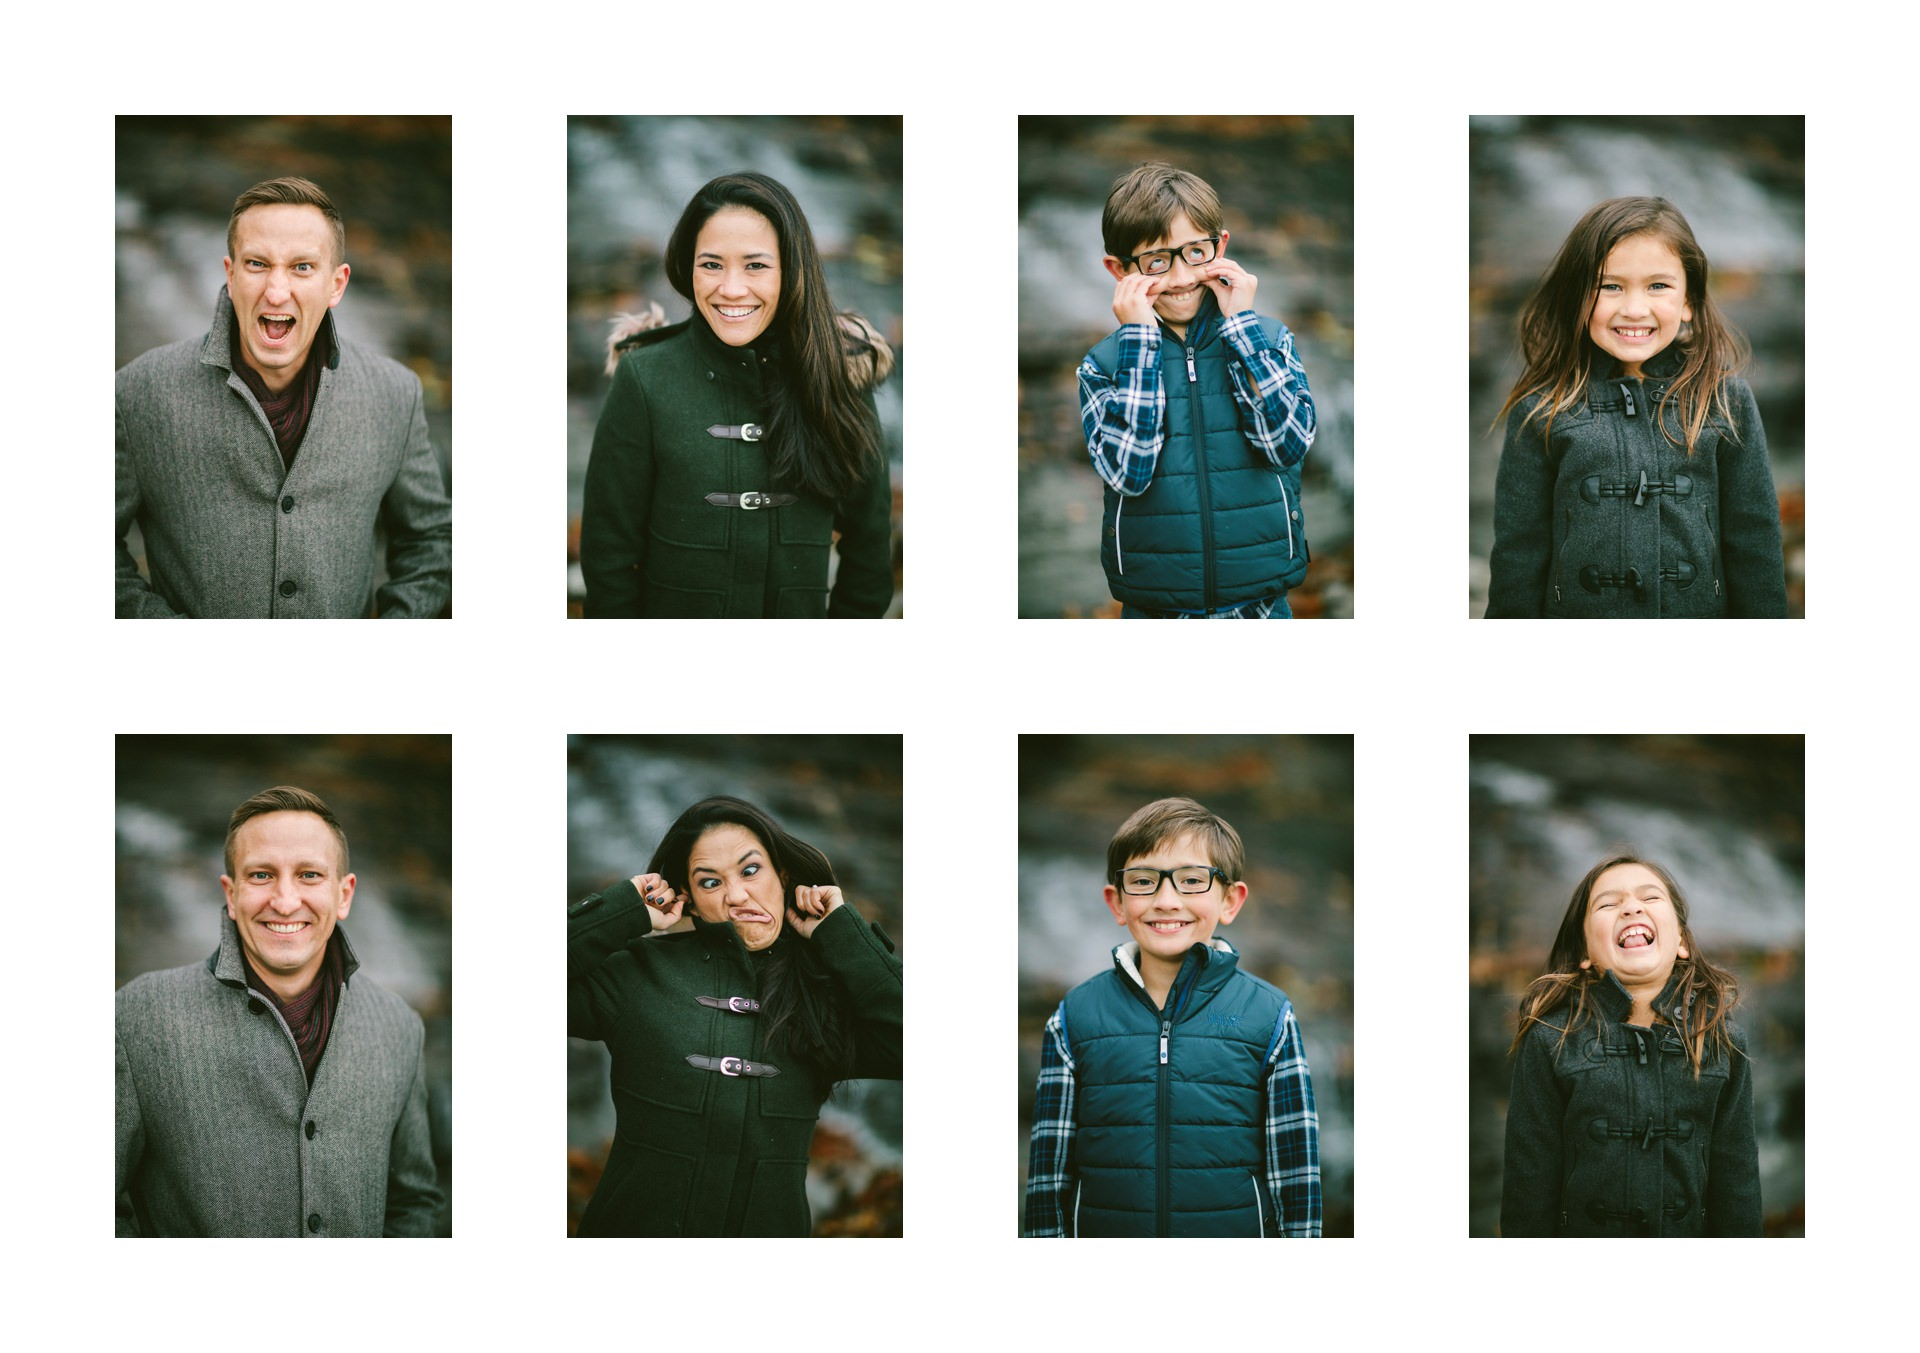 Westlake Ohio Family Portrait Photographer The Roths 71.jpg